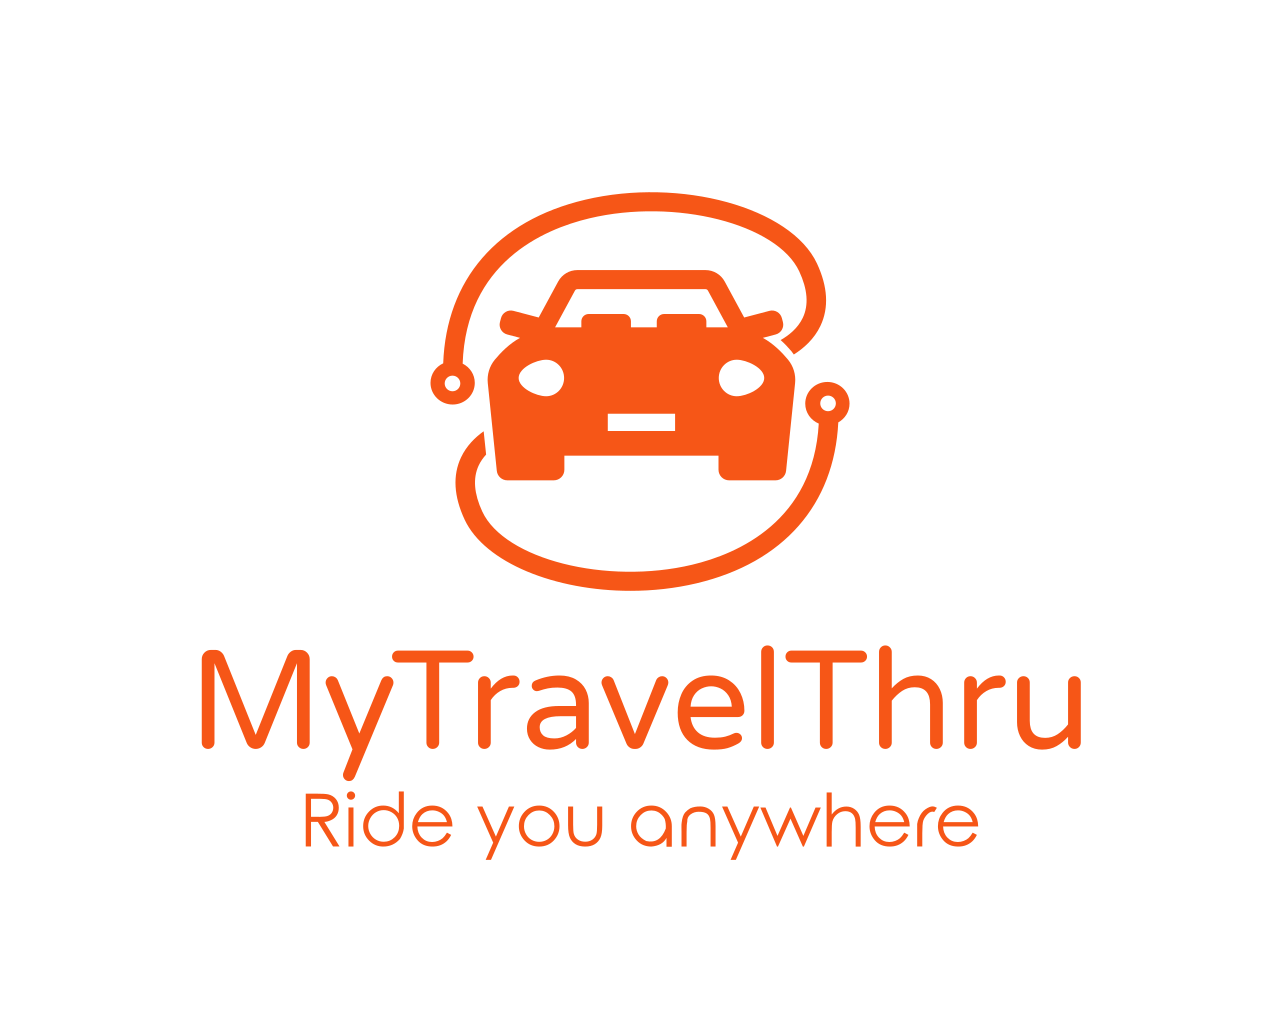 MyTravelThru Offers Efficient Transport Aggregator Services for Both Customers in Vietnam and Globally